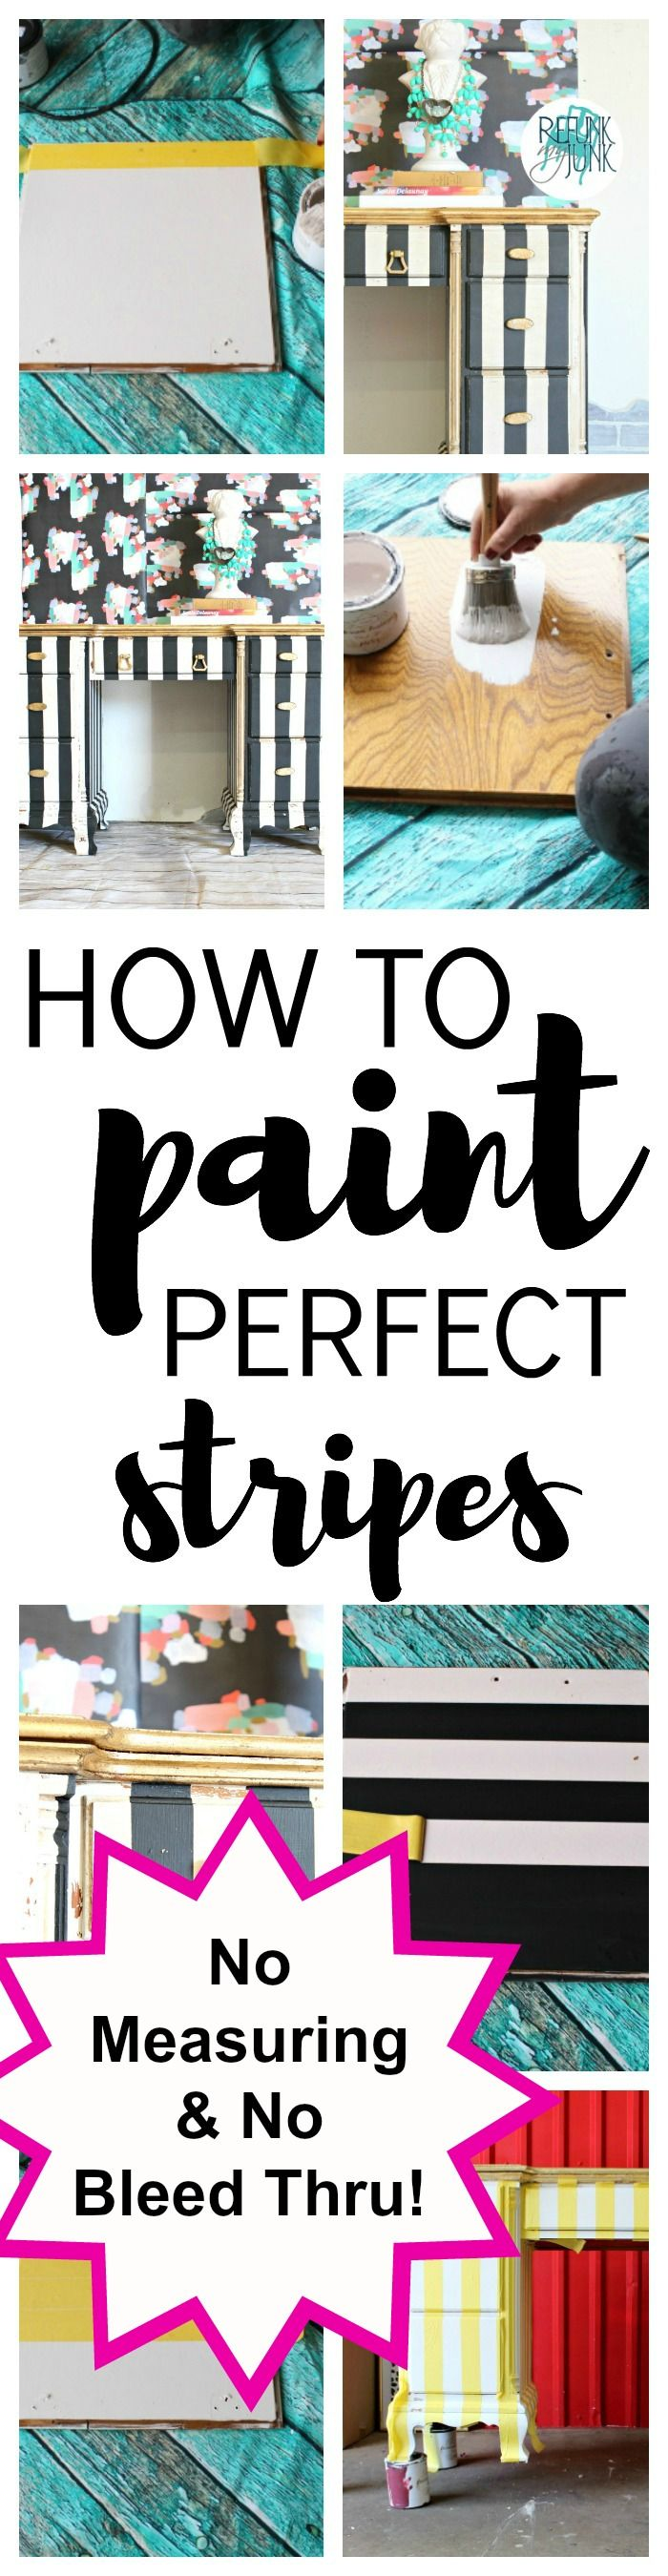 How To Paint The Perfect Stripes | Refunk My Junk | Furniture Painting Tips  U0026 Painting